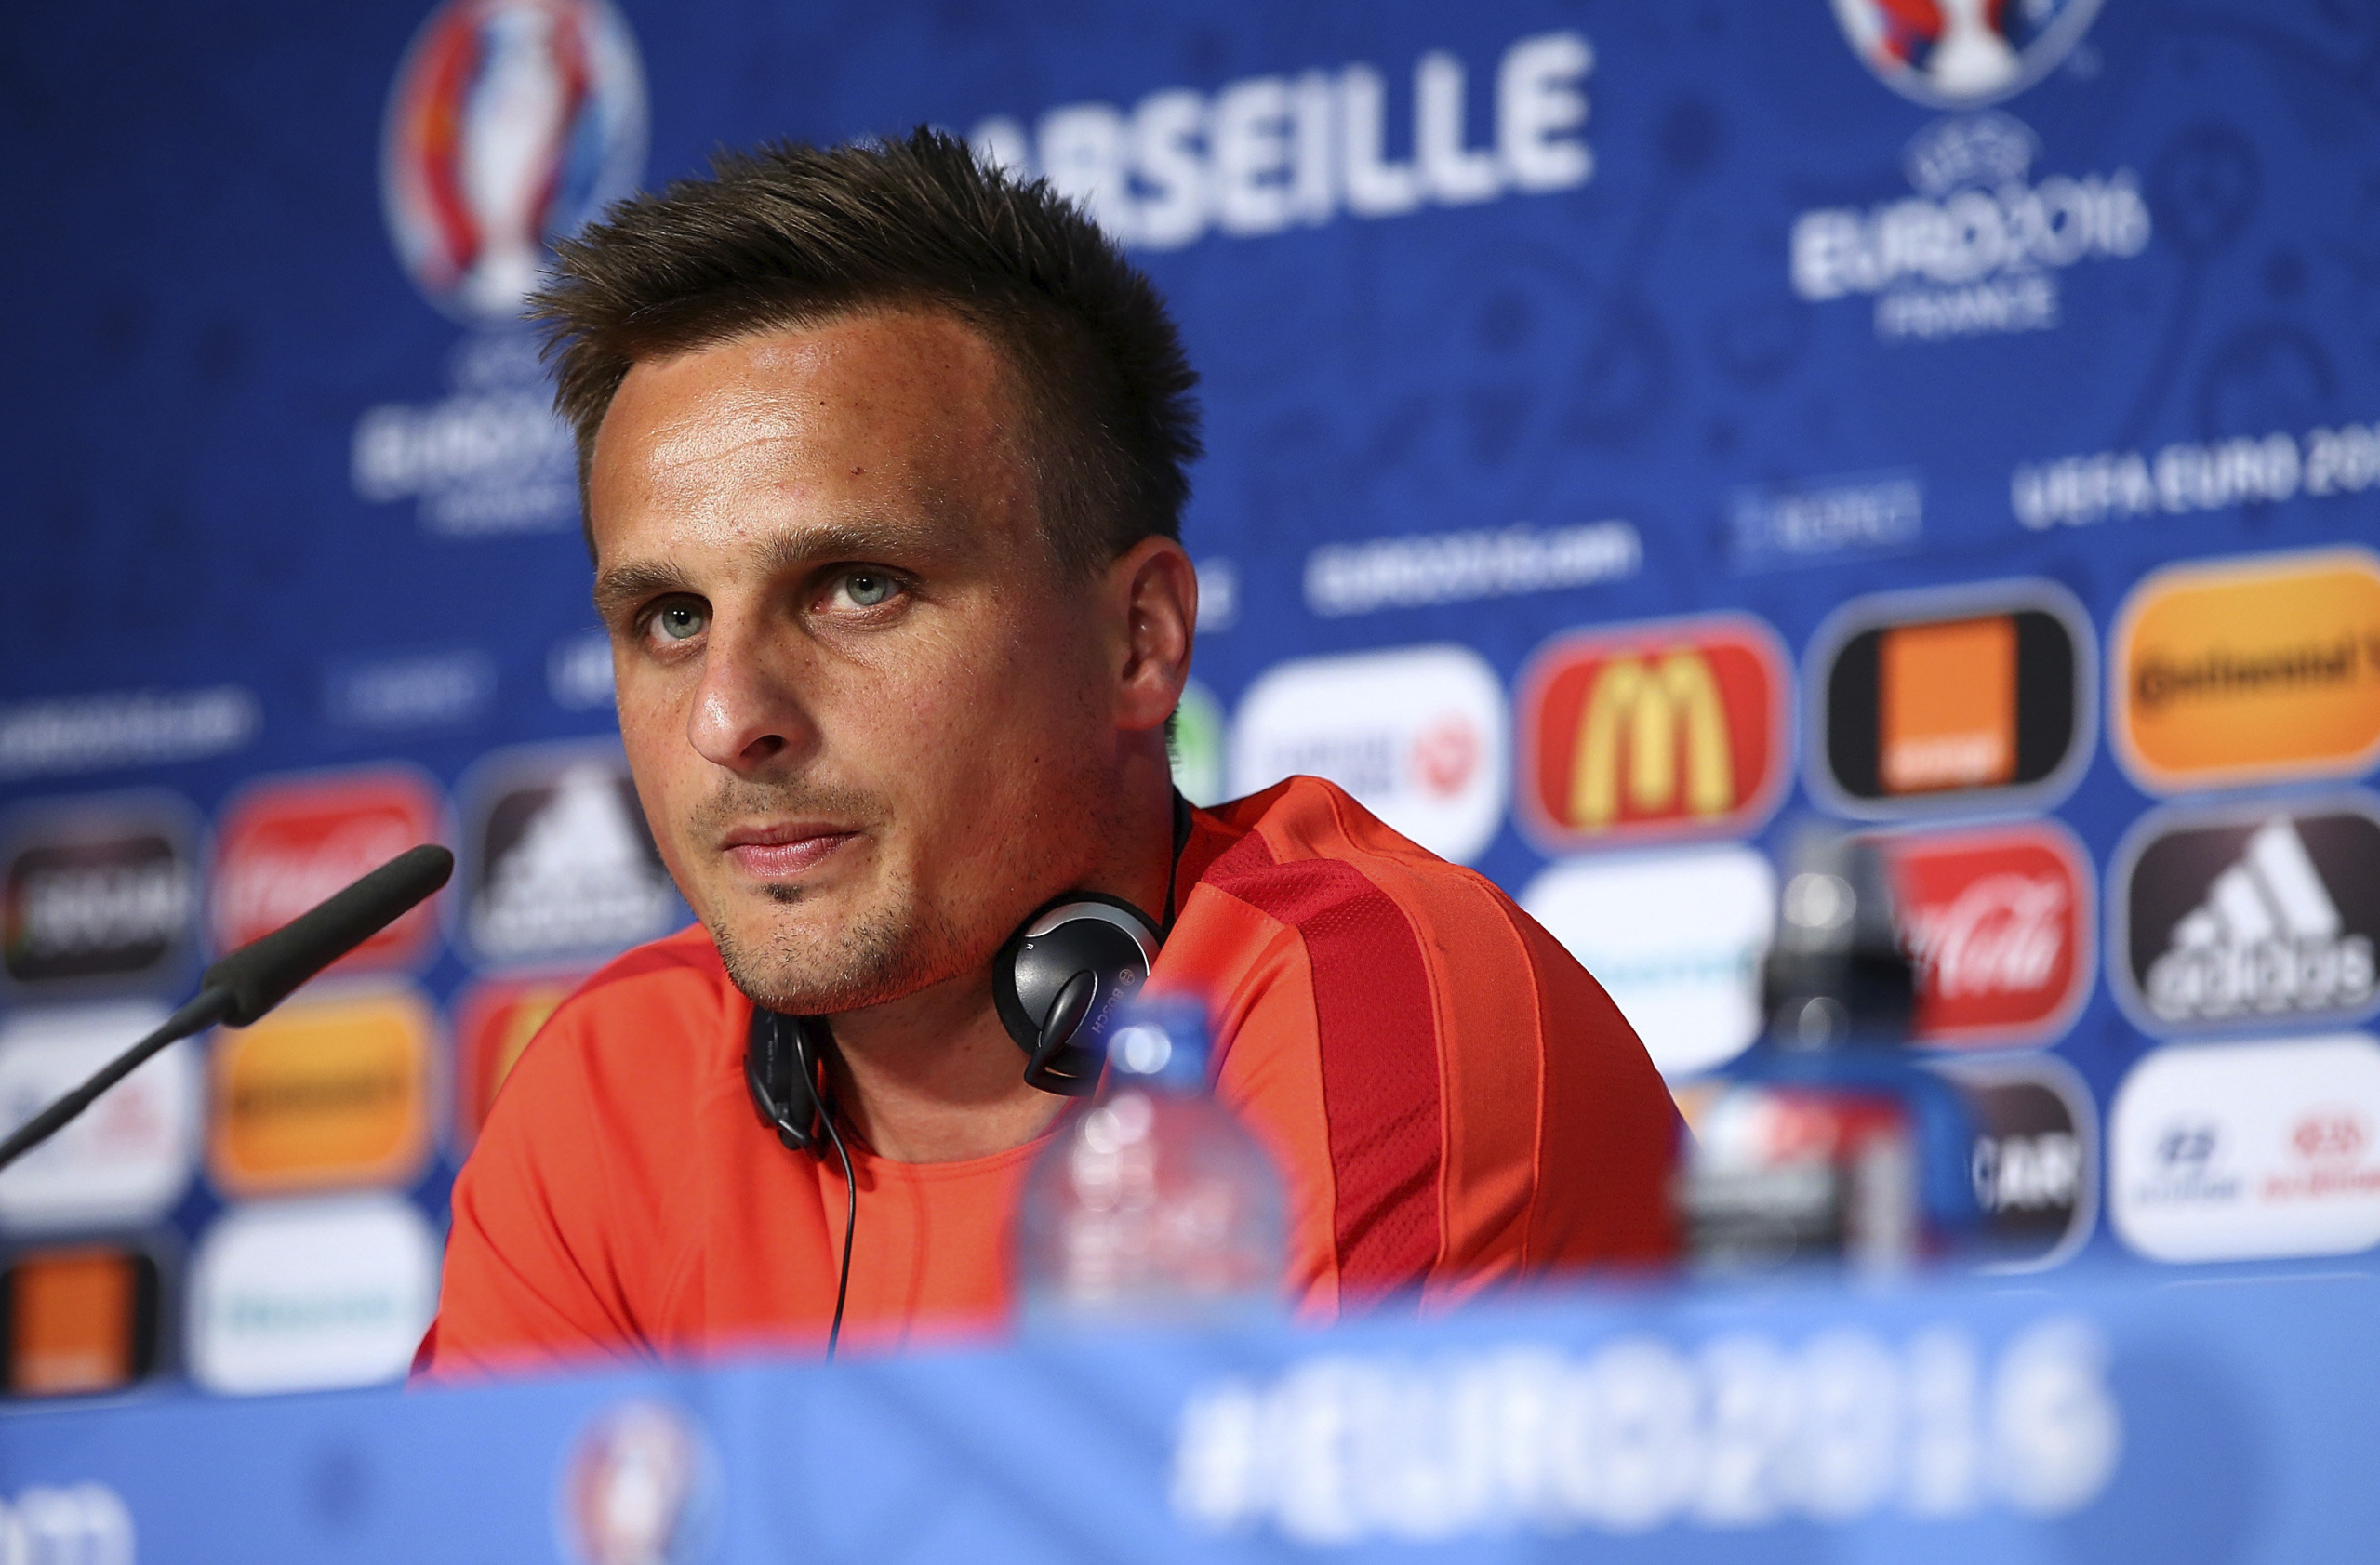 Euro 2016 Preview: Poland wary of wounded Ukraine as they eye last 16